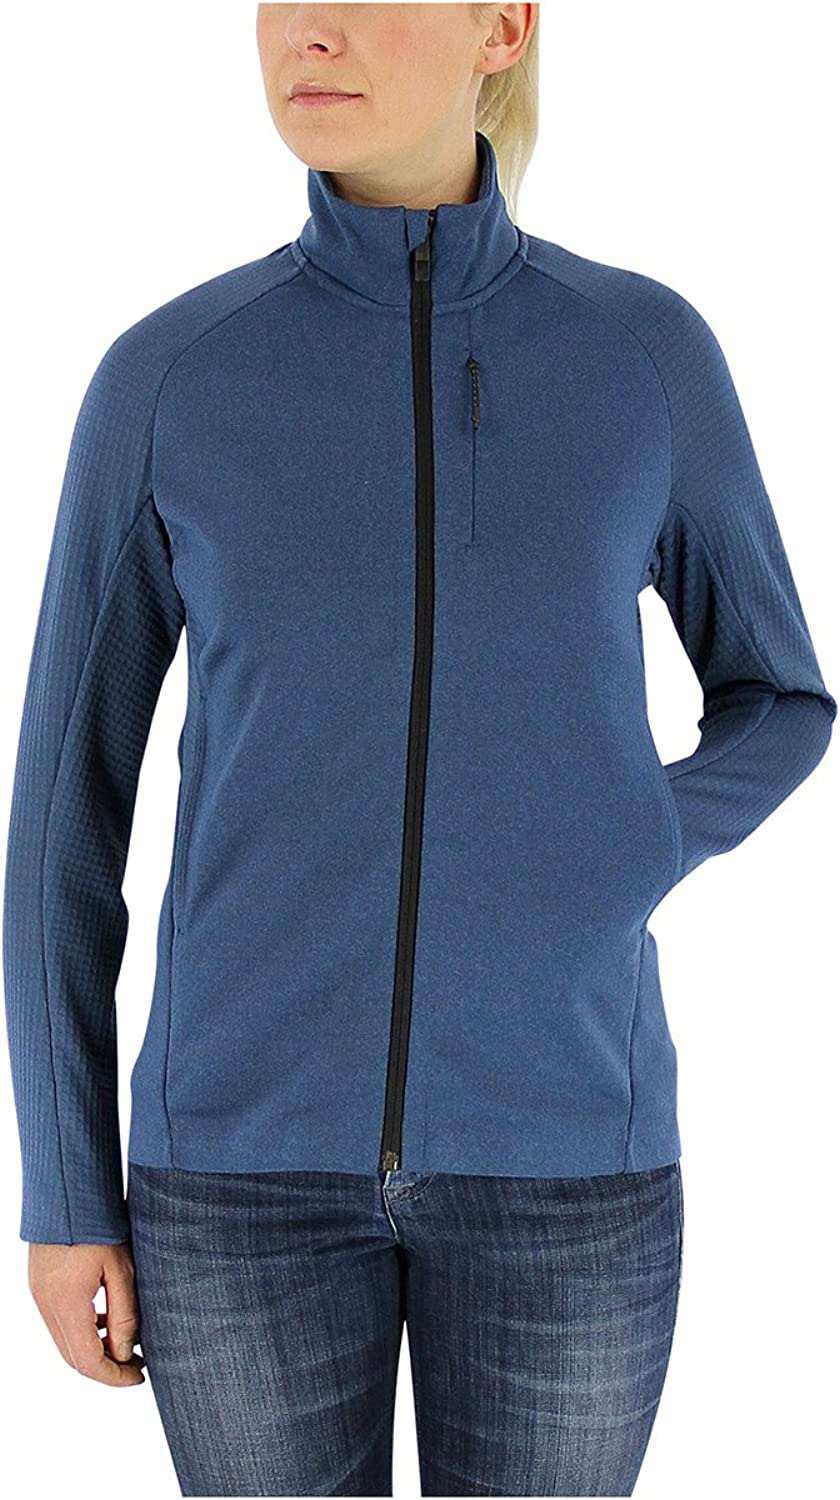 Adidas Outdoor Women's Climaheat Fleece Jacket